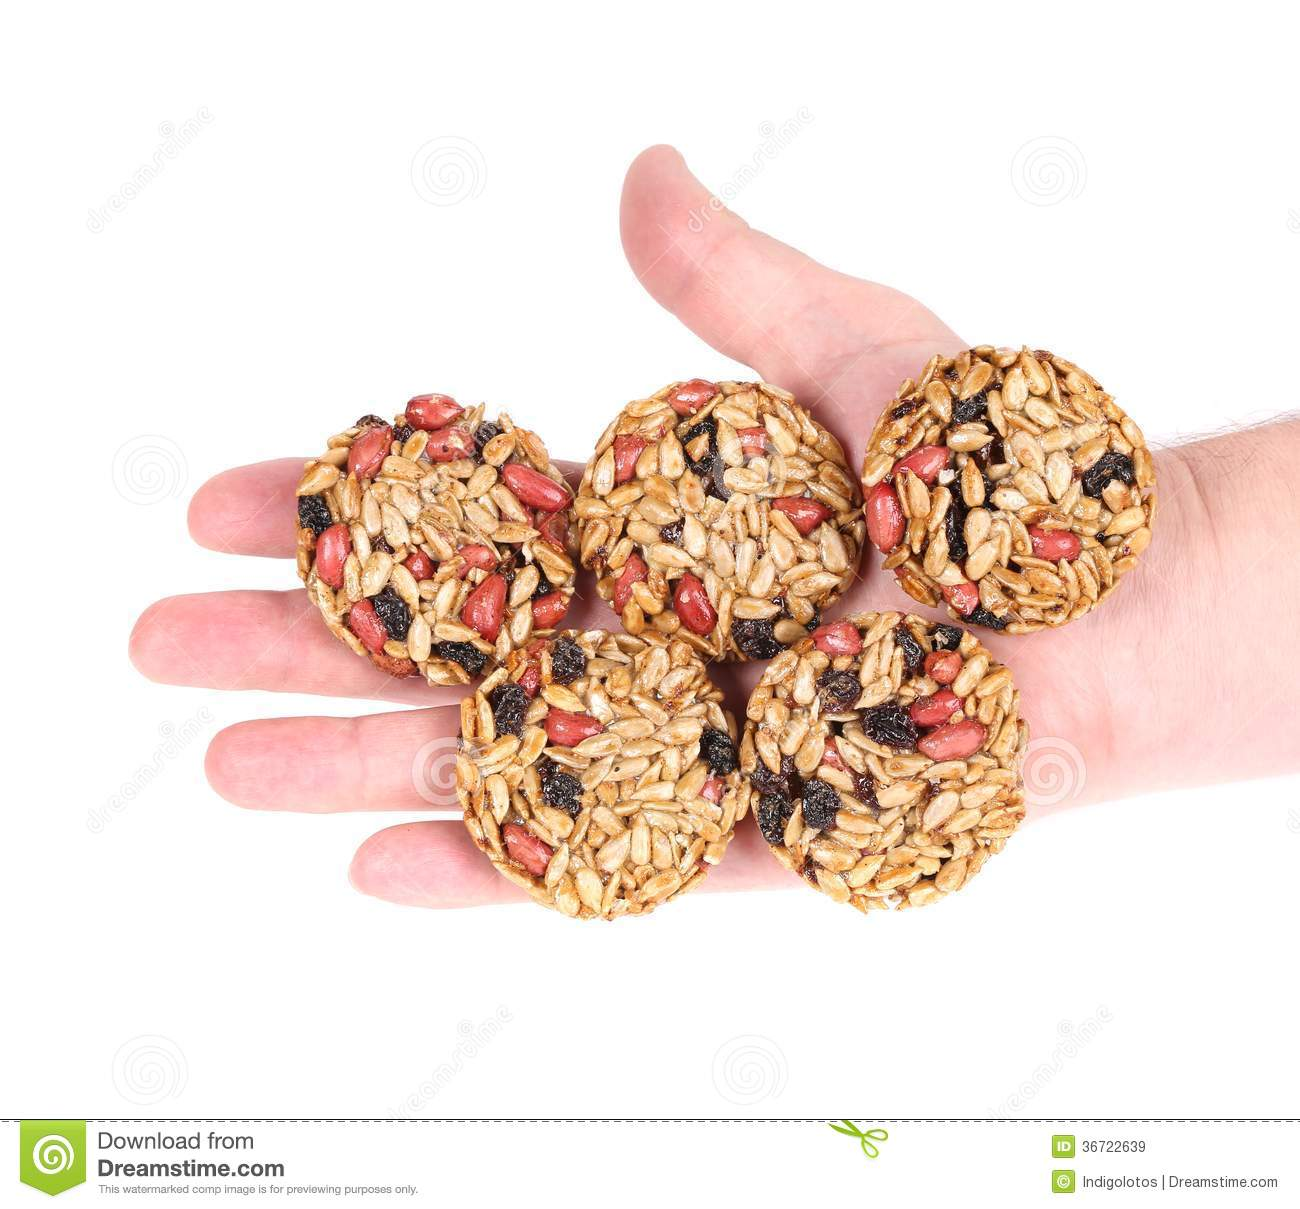 Round candied seeds and nuts in hand.